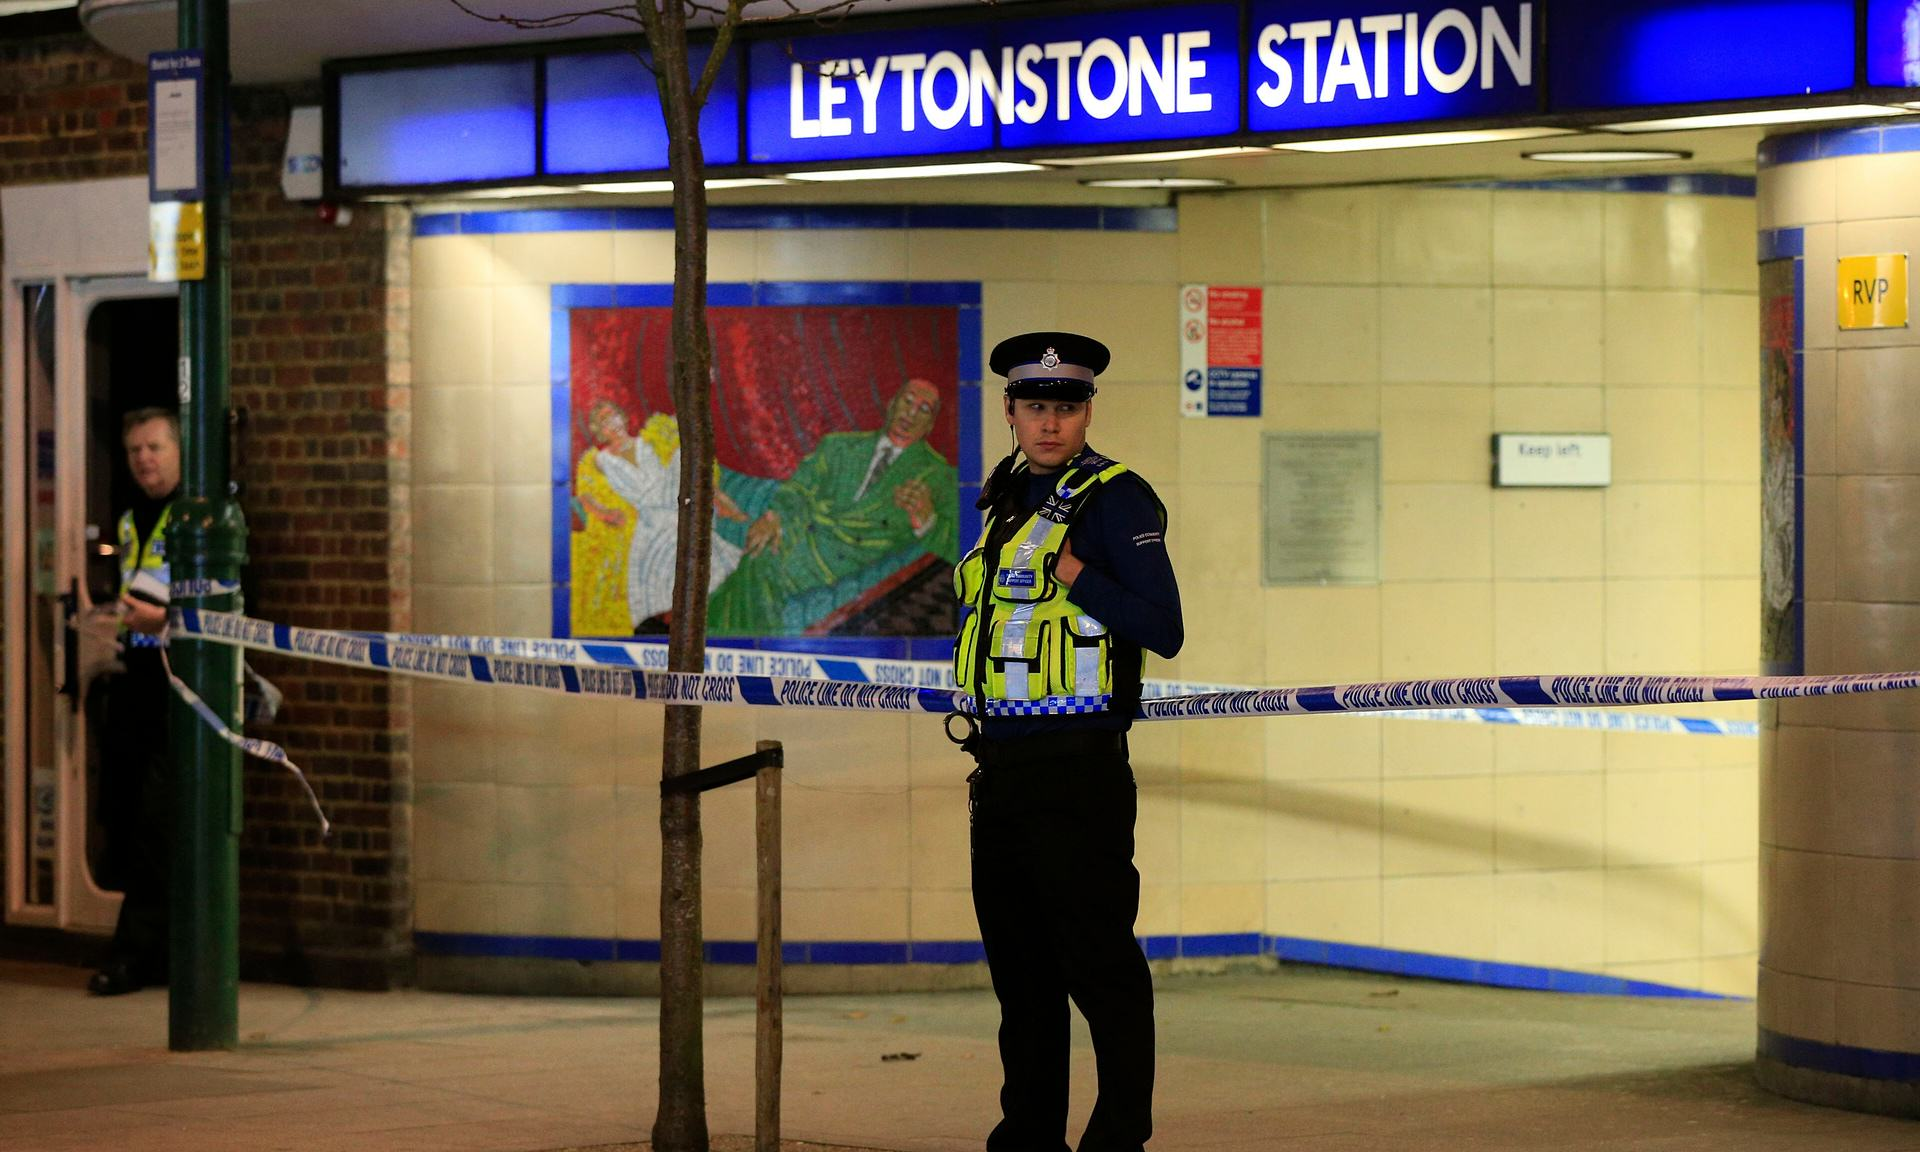 35001 Stabbing At London Tube Station A Terrorist Incident, Police Say